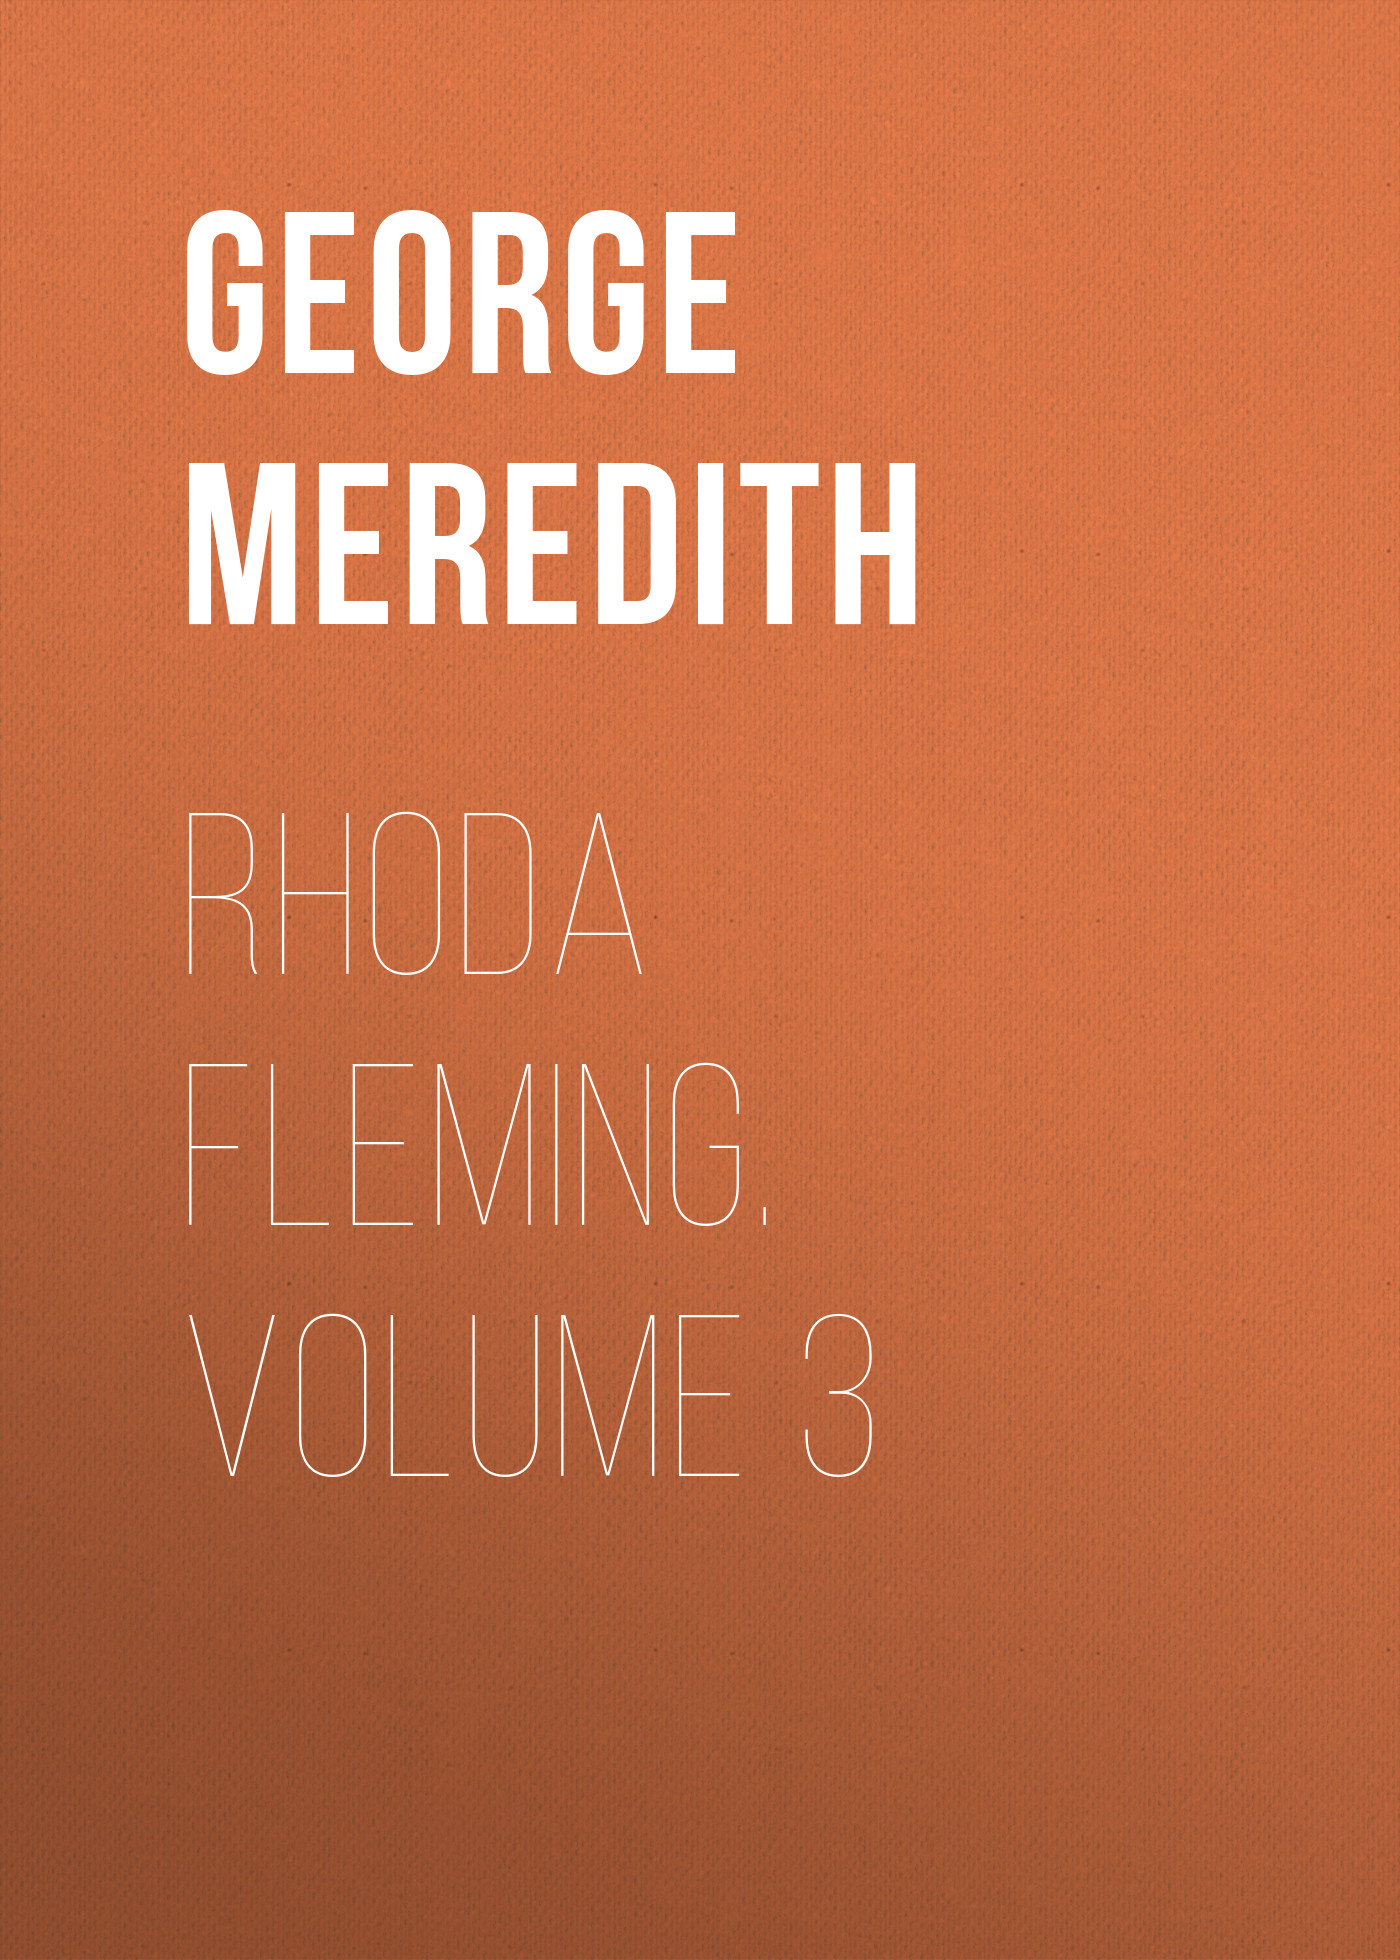 George Meredith Rhoda Fleming. Volume 3 цена и фото